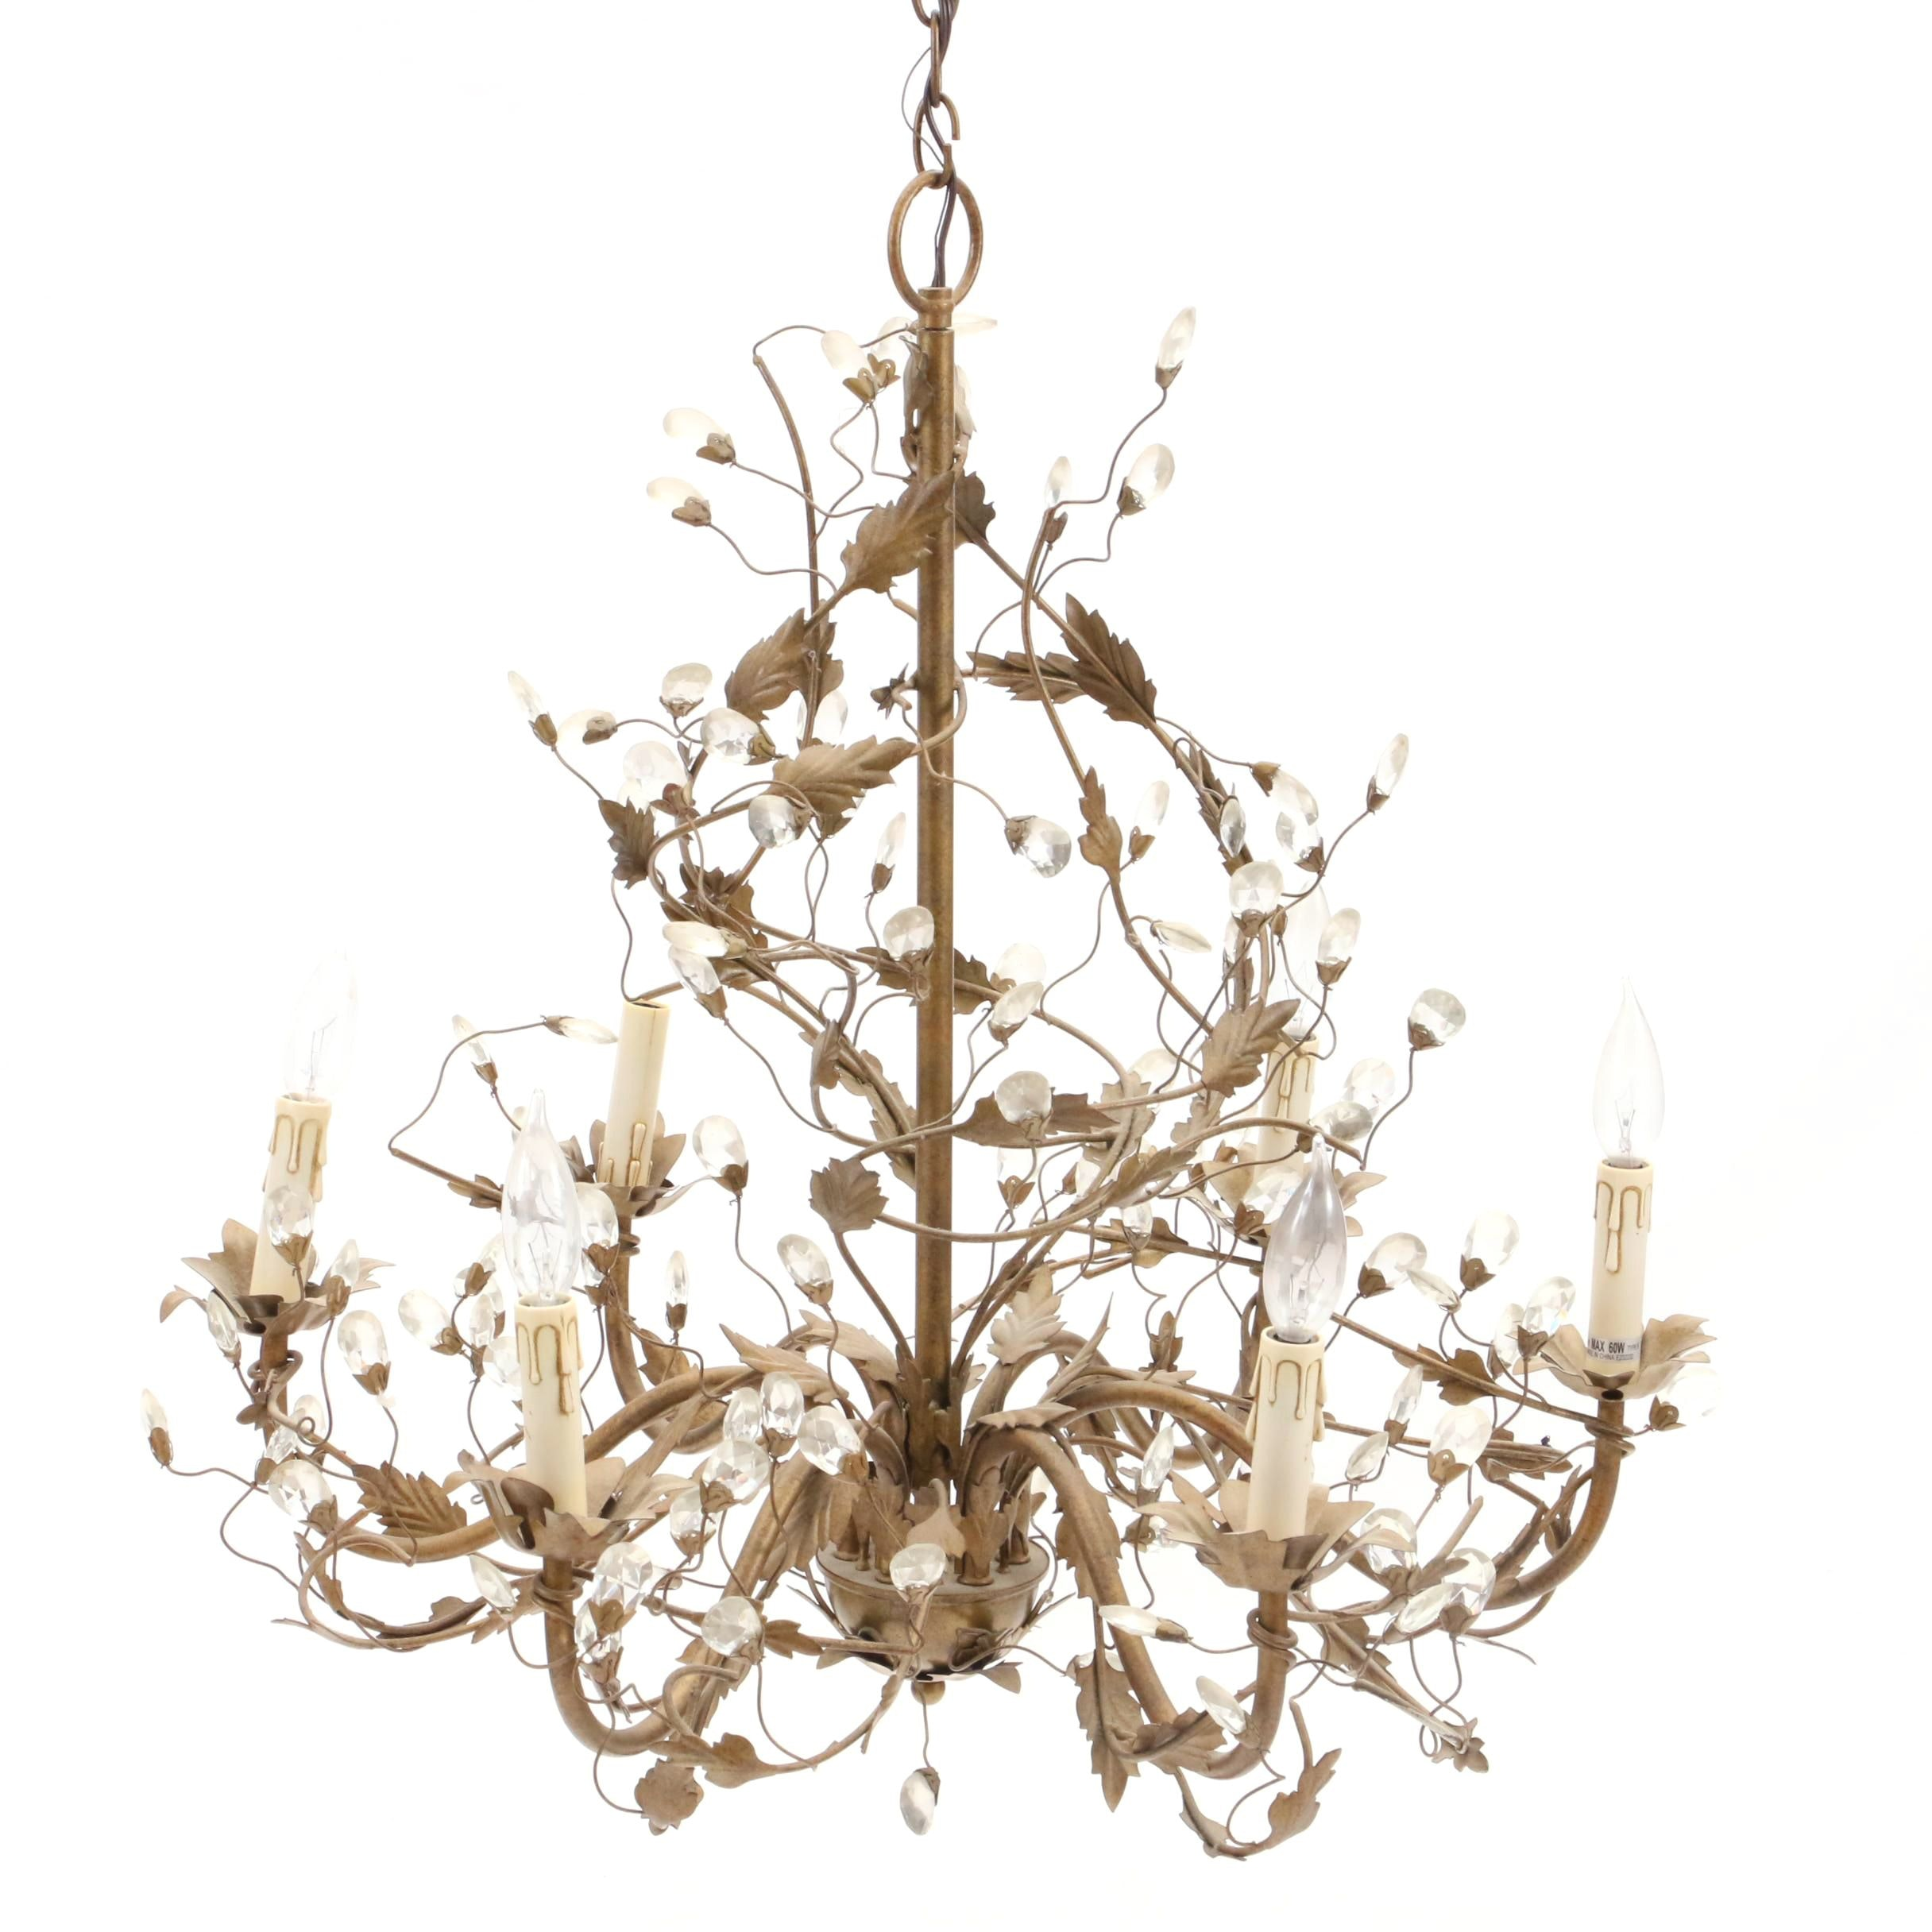 Vintage Metal Tole Chandelier with Prism Accents